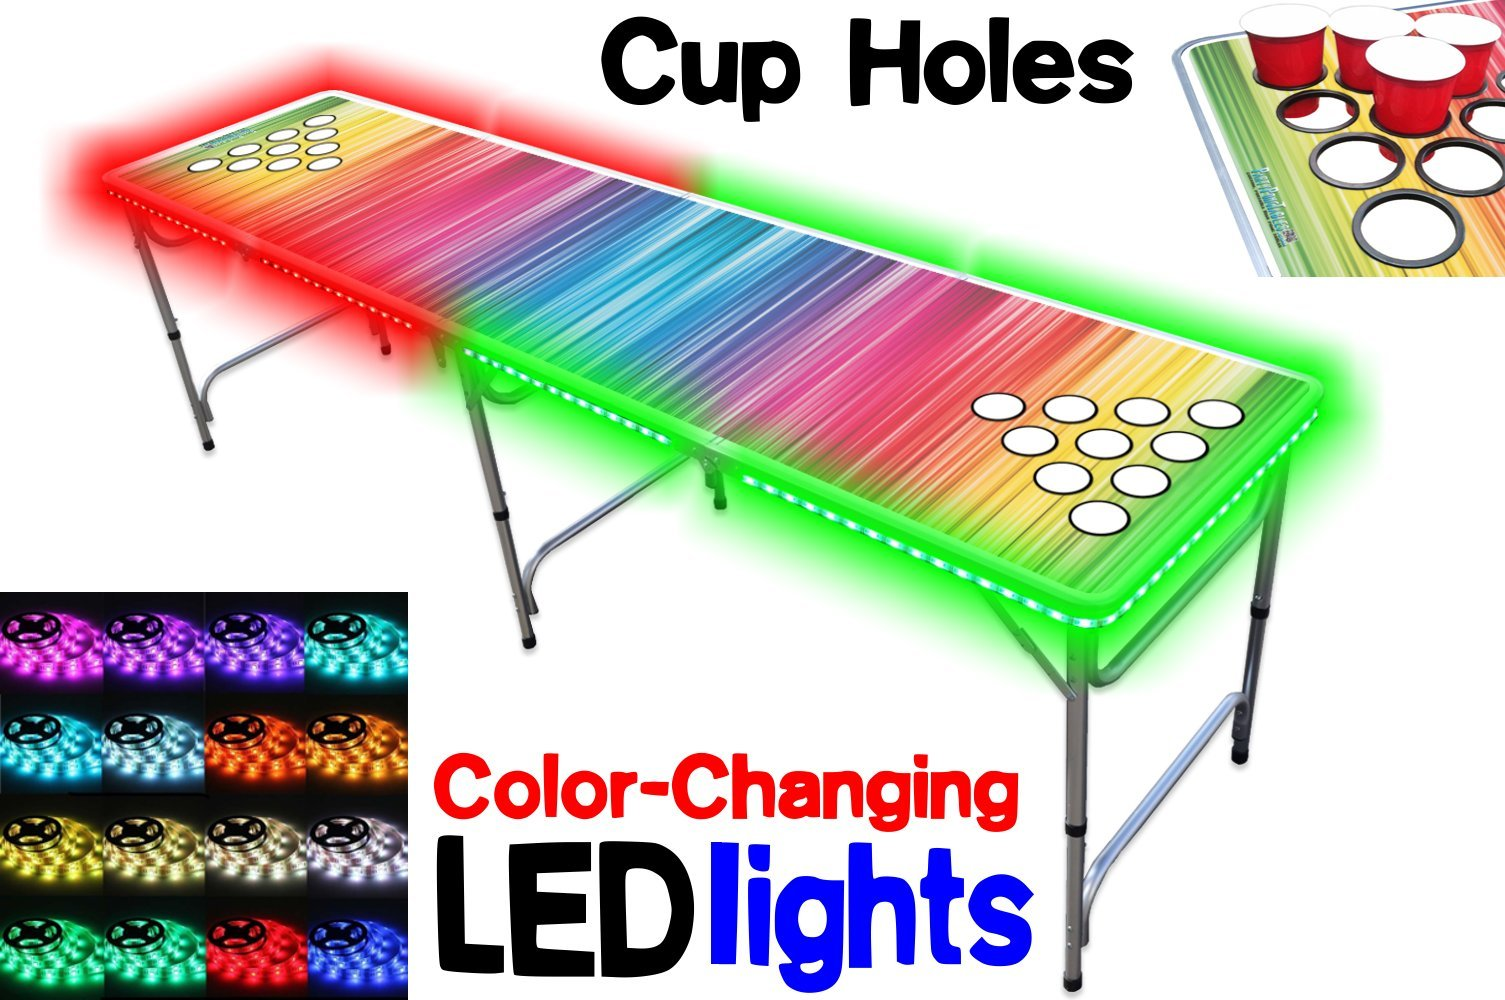 PartyPongTables.com 8-Foot Beer Pong Table with Cup Holes and LED Lights - Color Spectrum